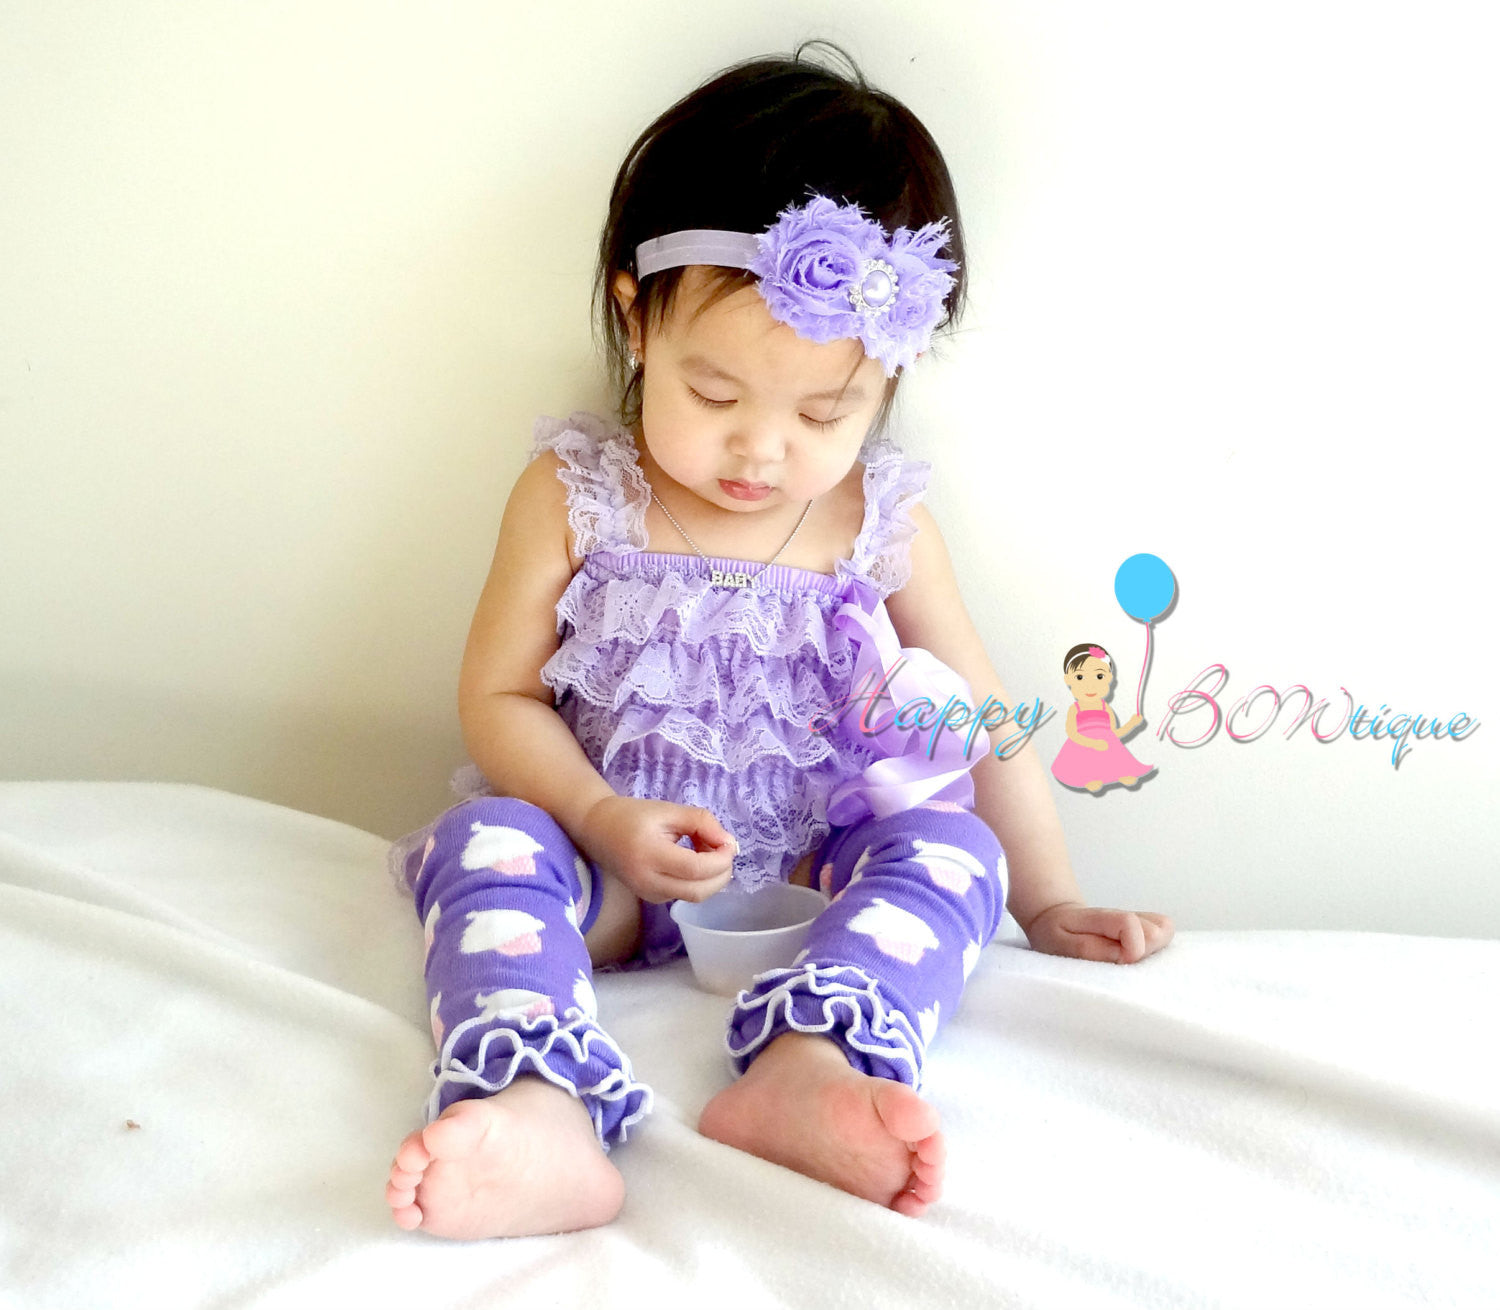 Lavender Easter Romper set with legwarmers - Happy BOWtique - children's clothing, Baby Girl clothing